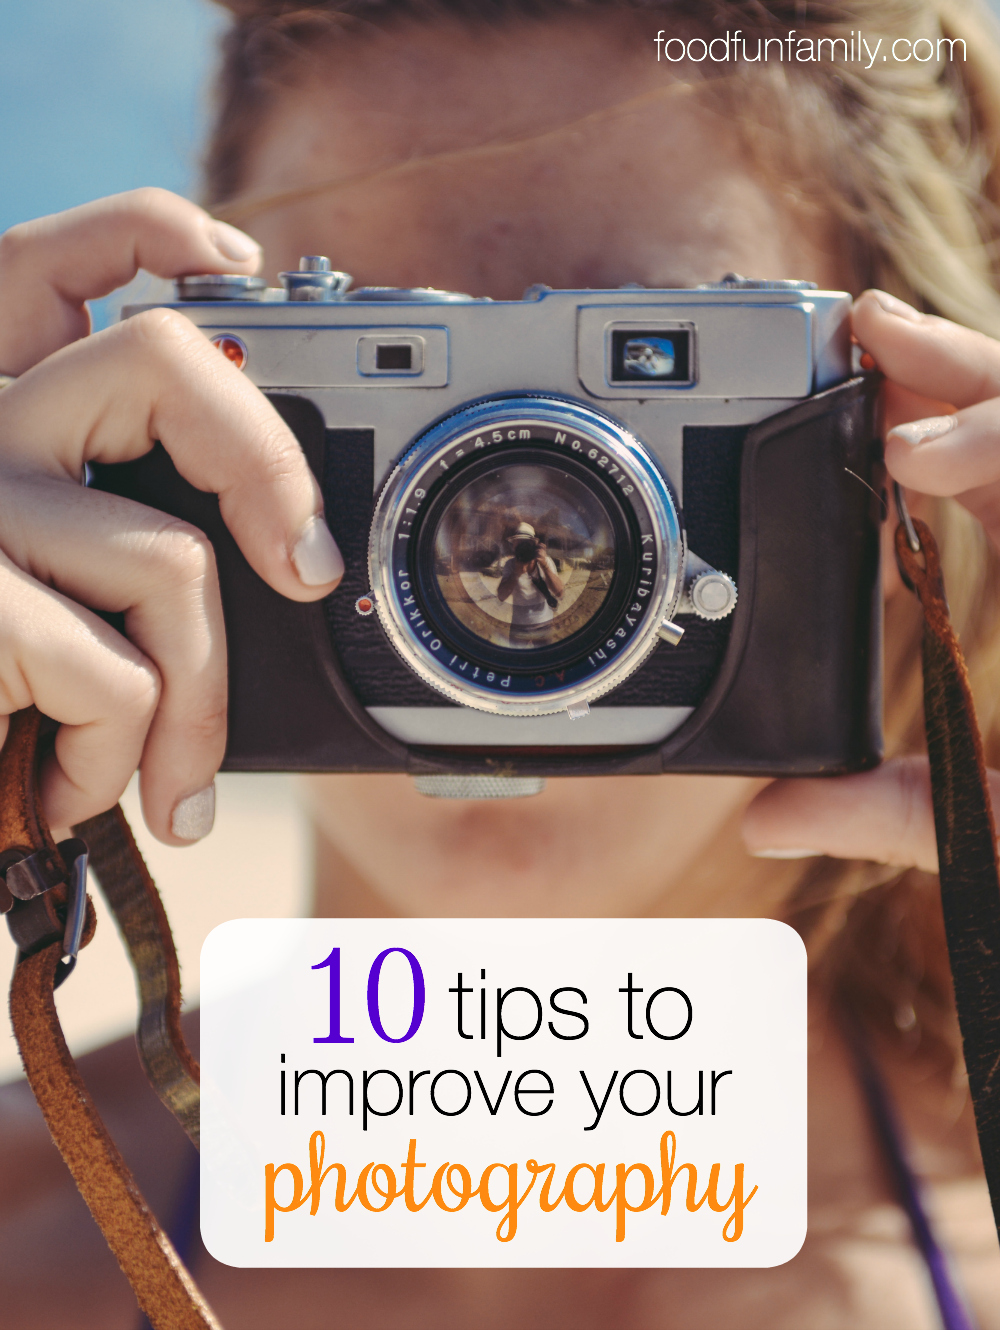 Want to take better pictures? Check out these 10 Tips to Improve Your Photography. The best thing? Anyone can improve, regardless of the camera they have or their past experience!